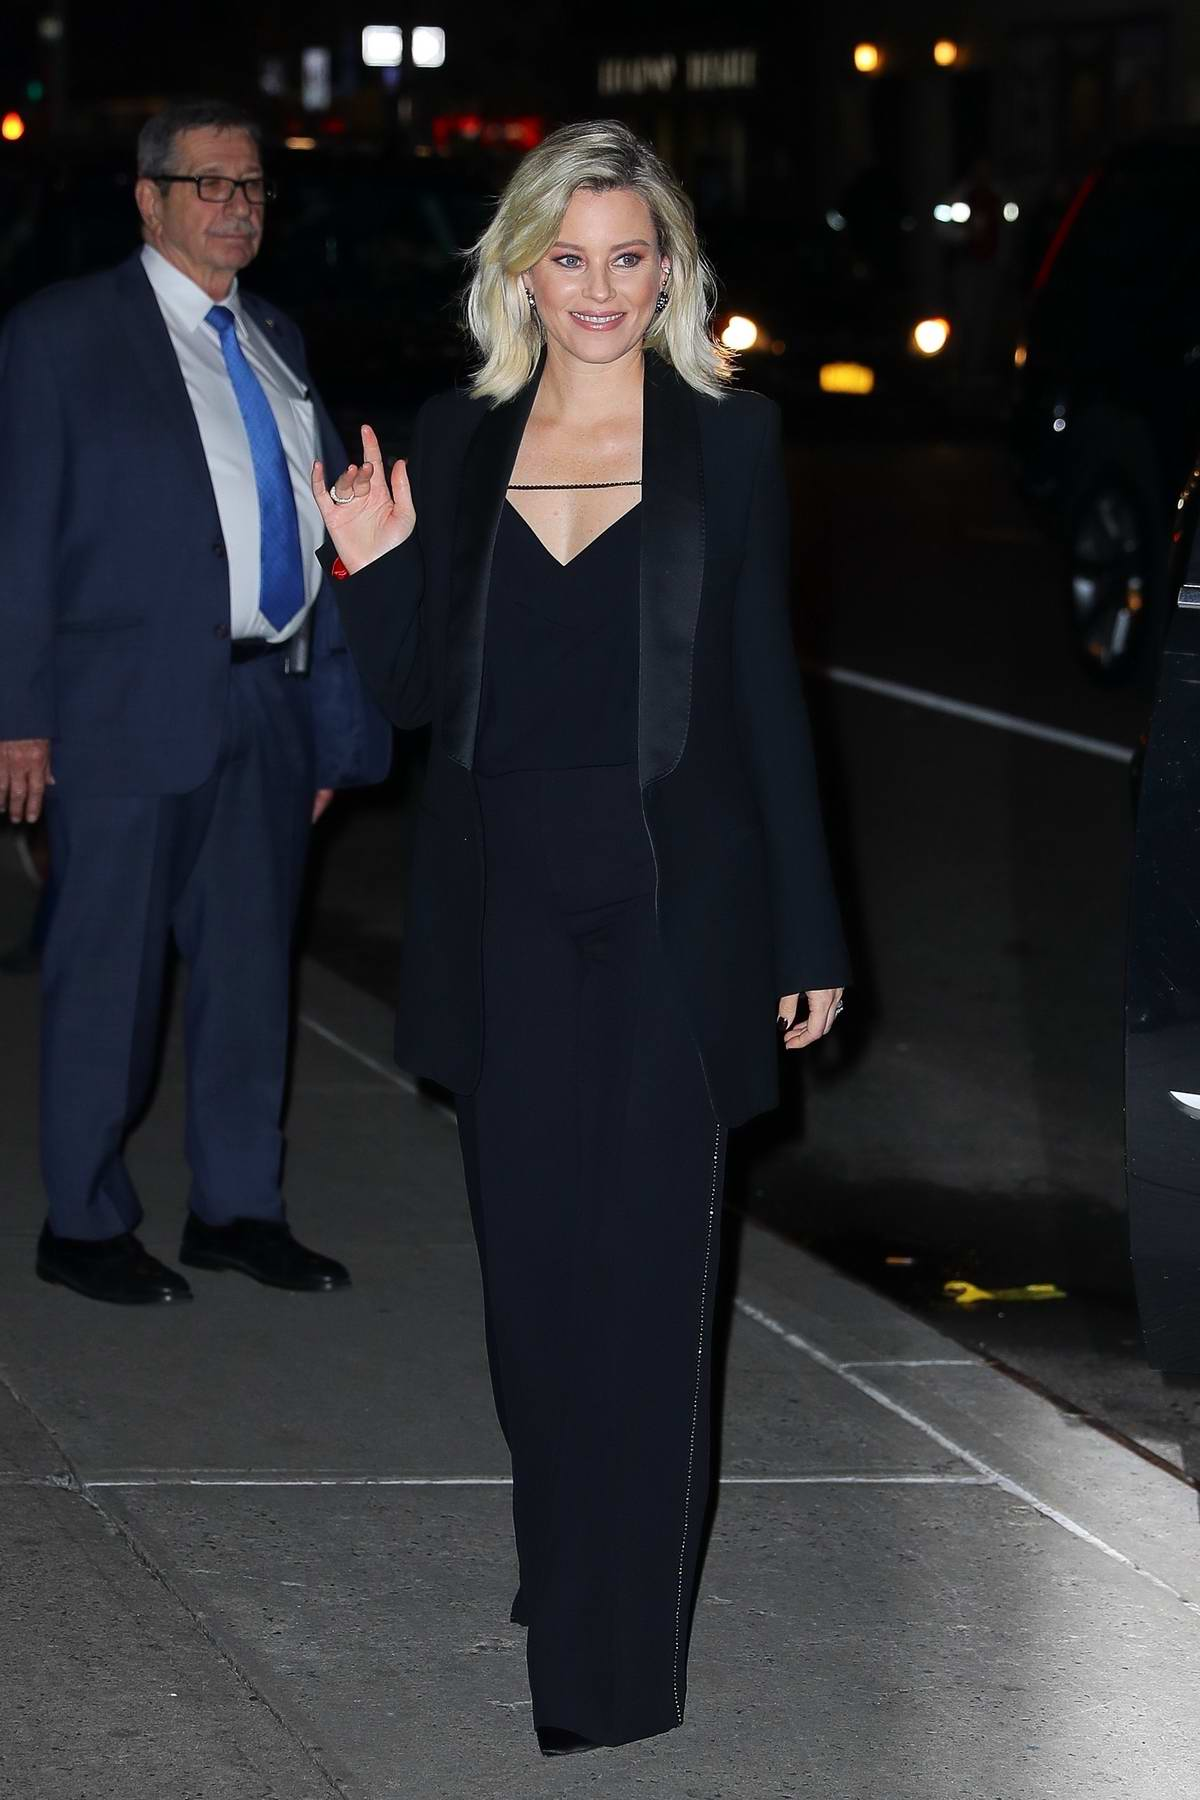 Elizabeth Banks seen wearing a black suit as she arrives at 'The Late Show With Stephen Colbert' in New York City